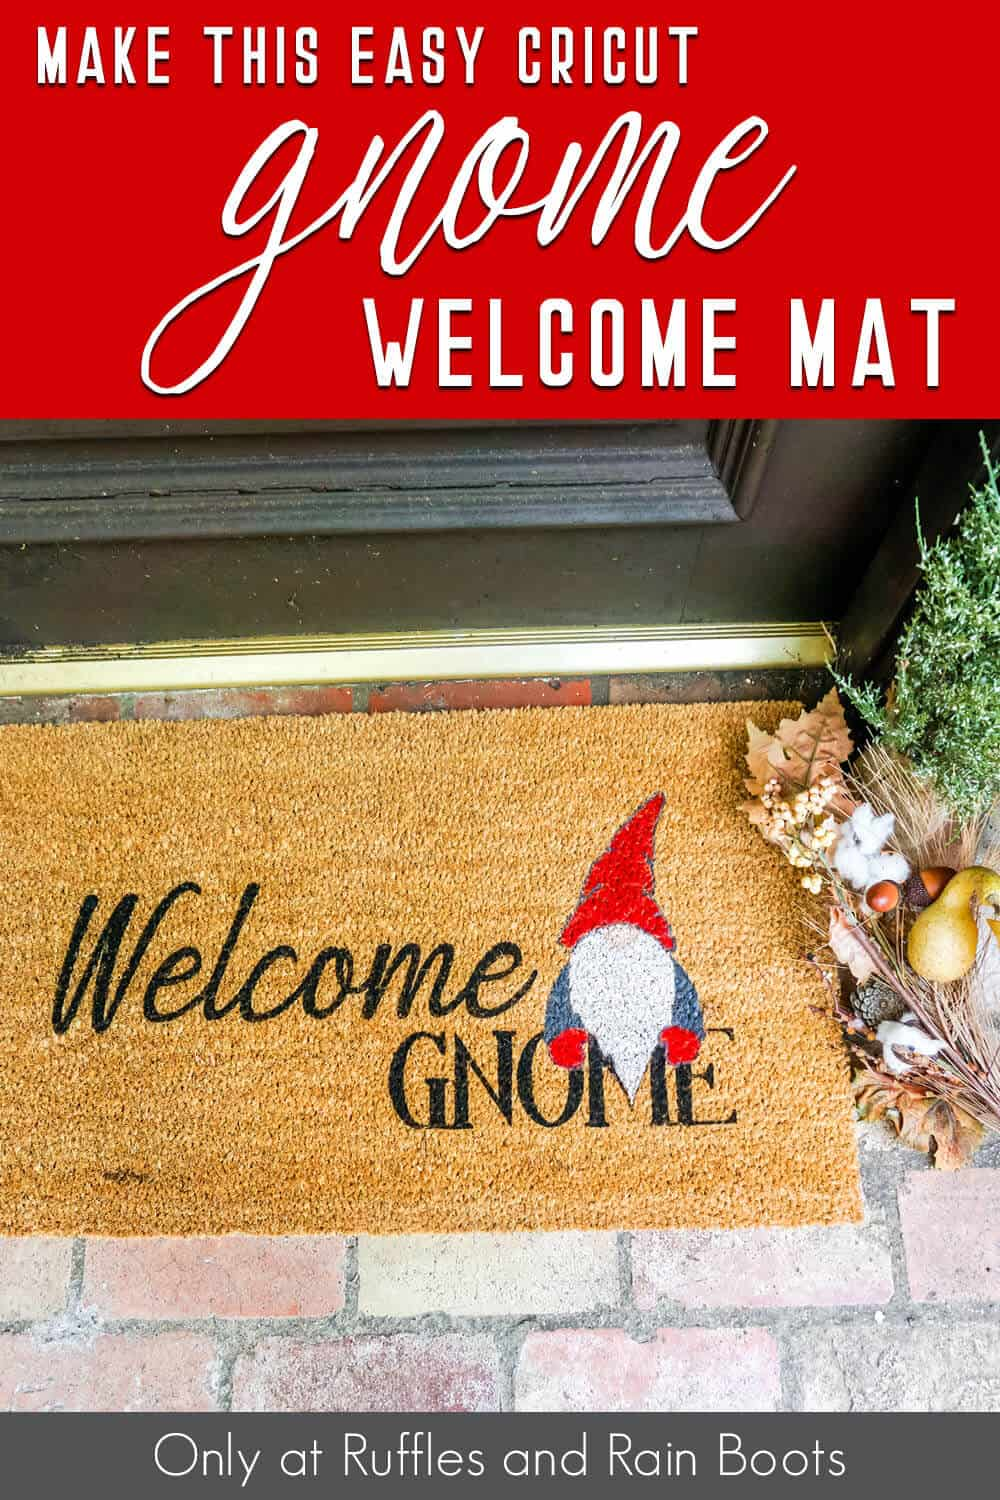 diy stencil with a cricut to make a doormat with text which reads make this easy cricut gnome welcome mat